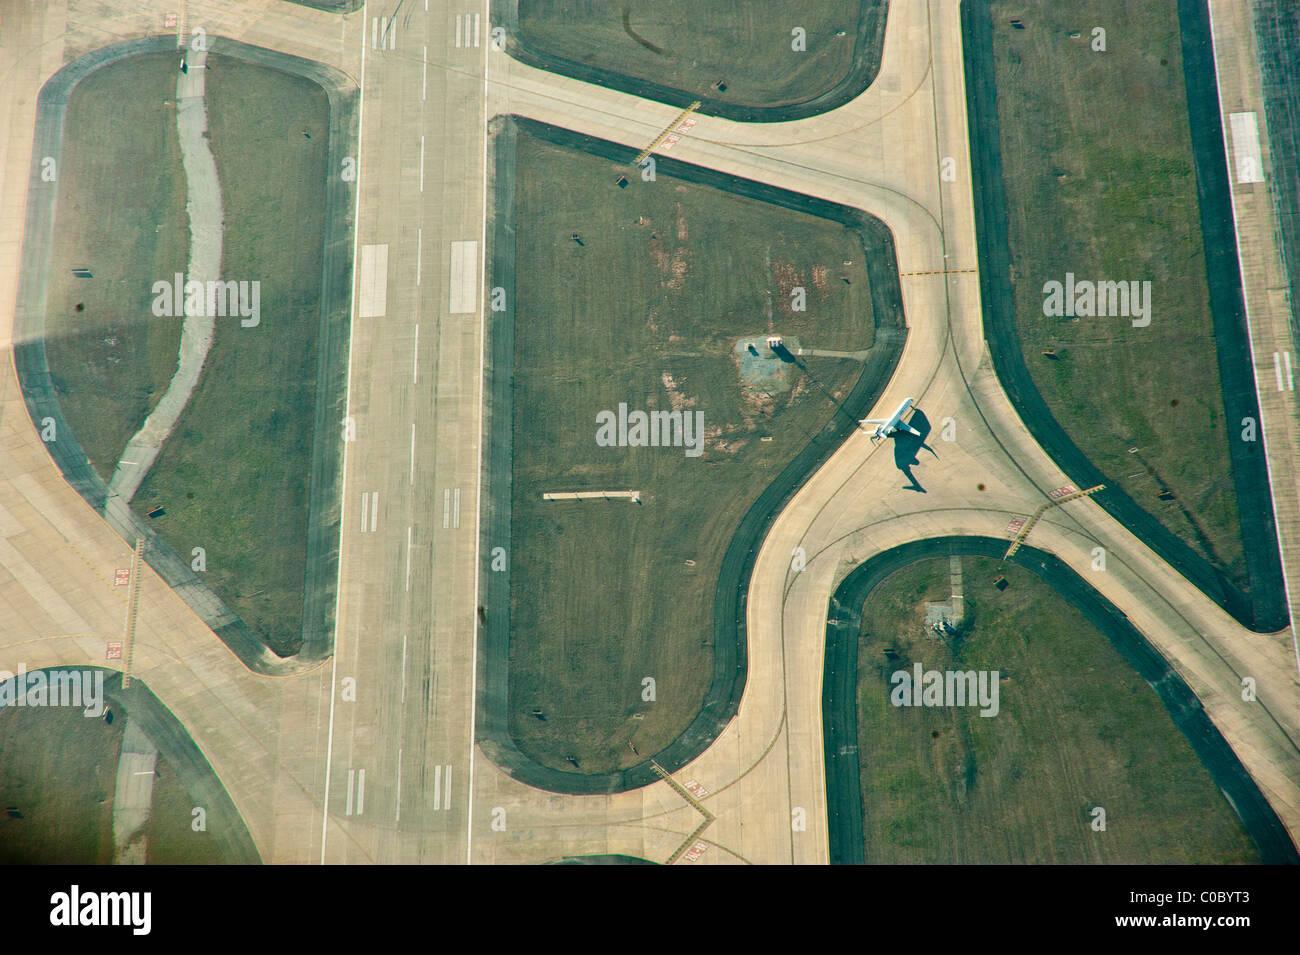 An aerial photograph of a jet taxiing on the tarmac at Atlanta's Hartsfield-Jackson Airport after landing. - Stock Image